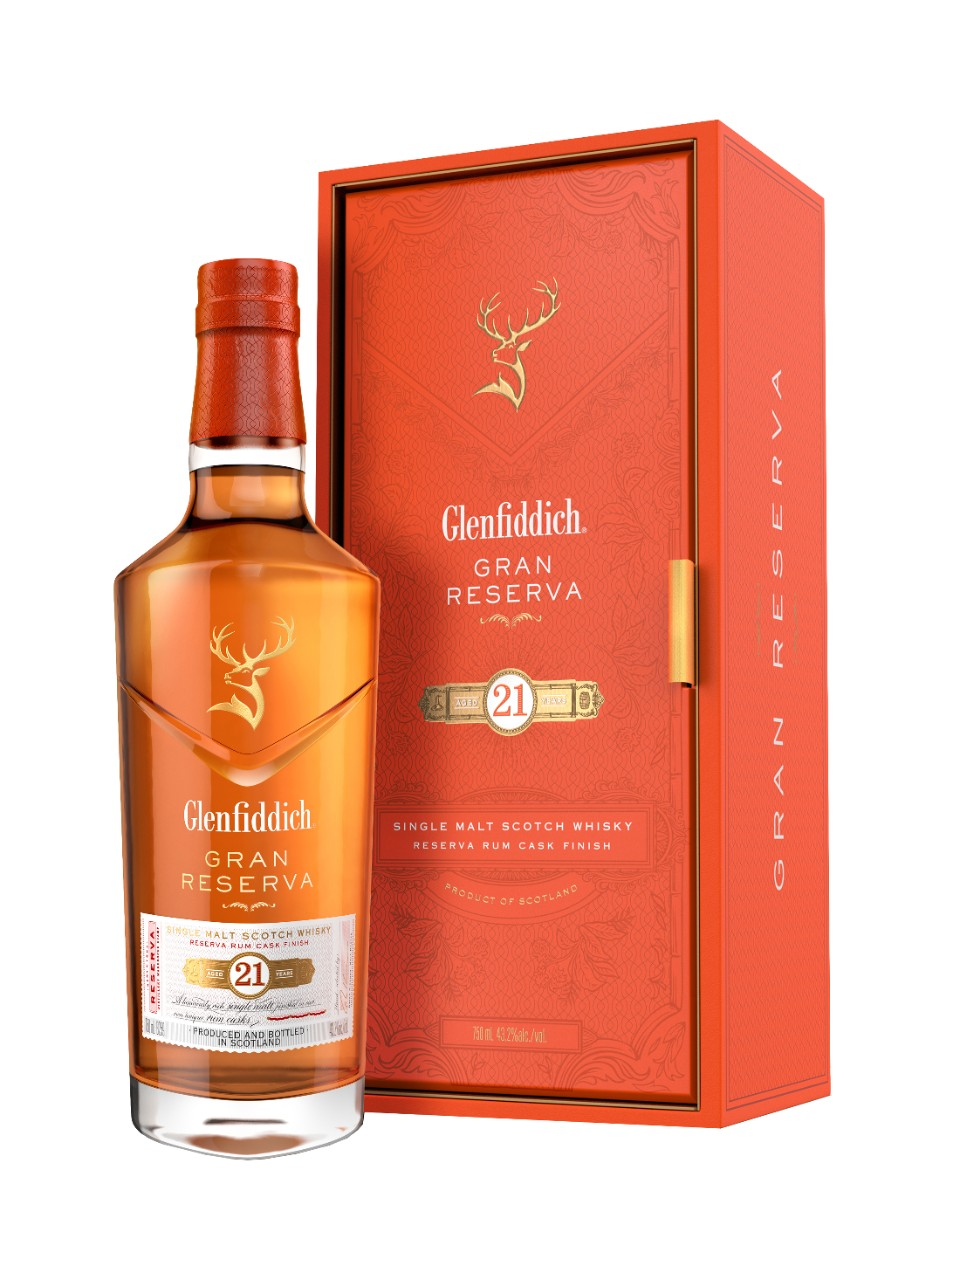 Glenfiddich Gran Reserva 21 Year Old Single Malt Scotch